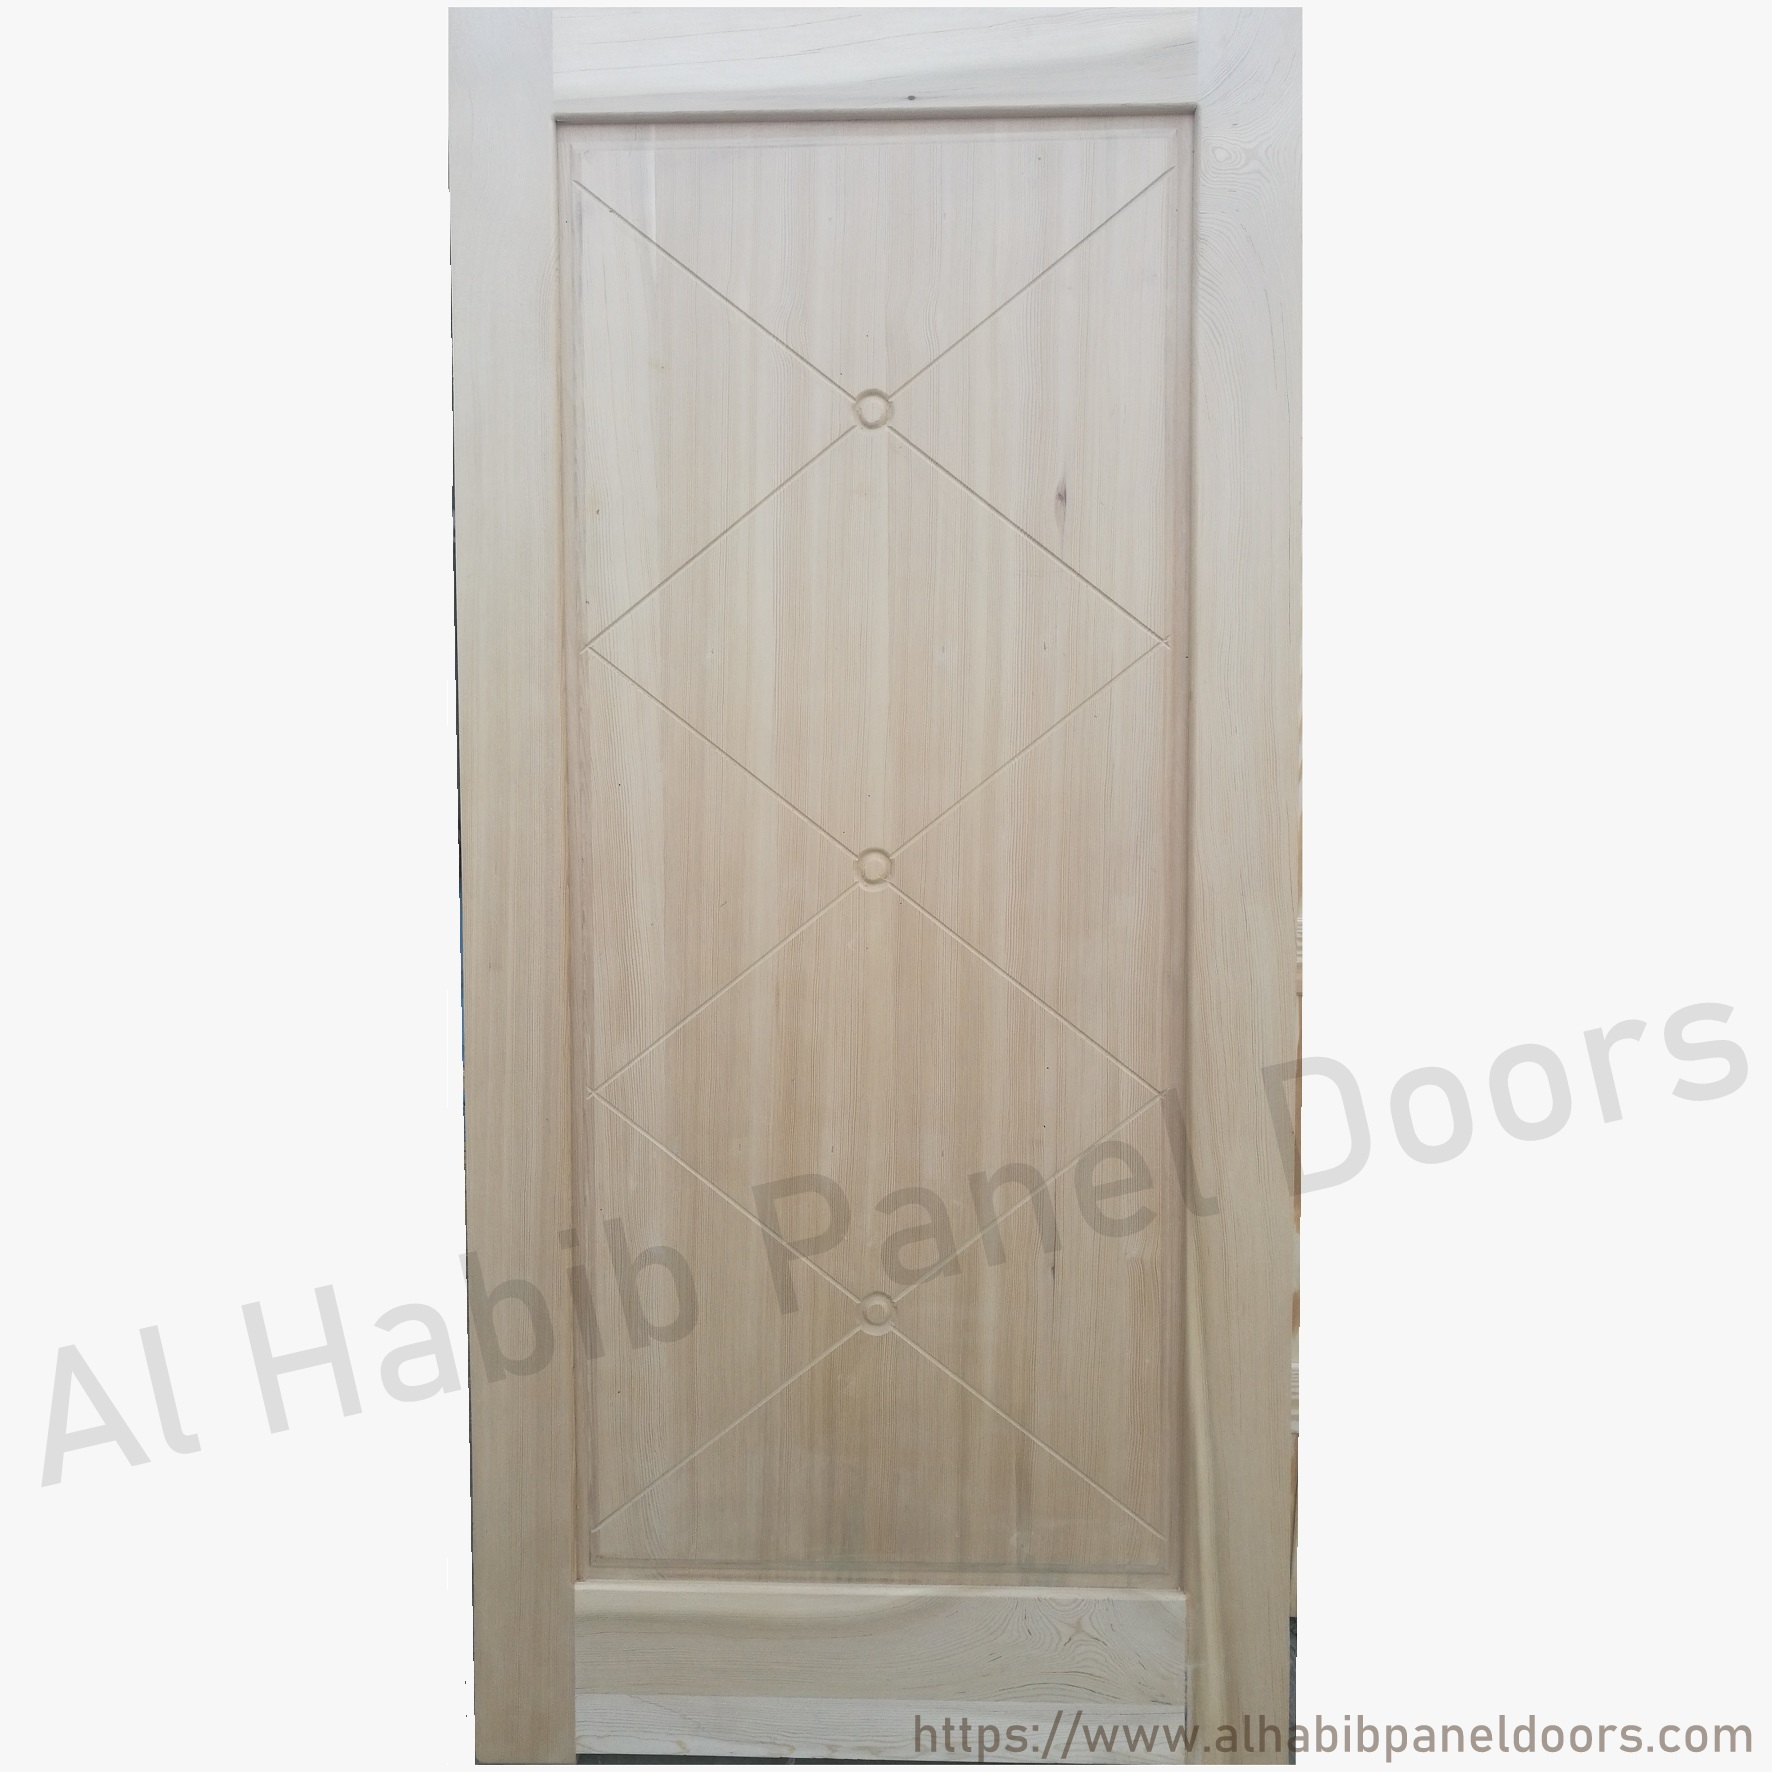 Solid wood doors doors al habib panel doors for Bedroom entrance door designs